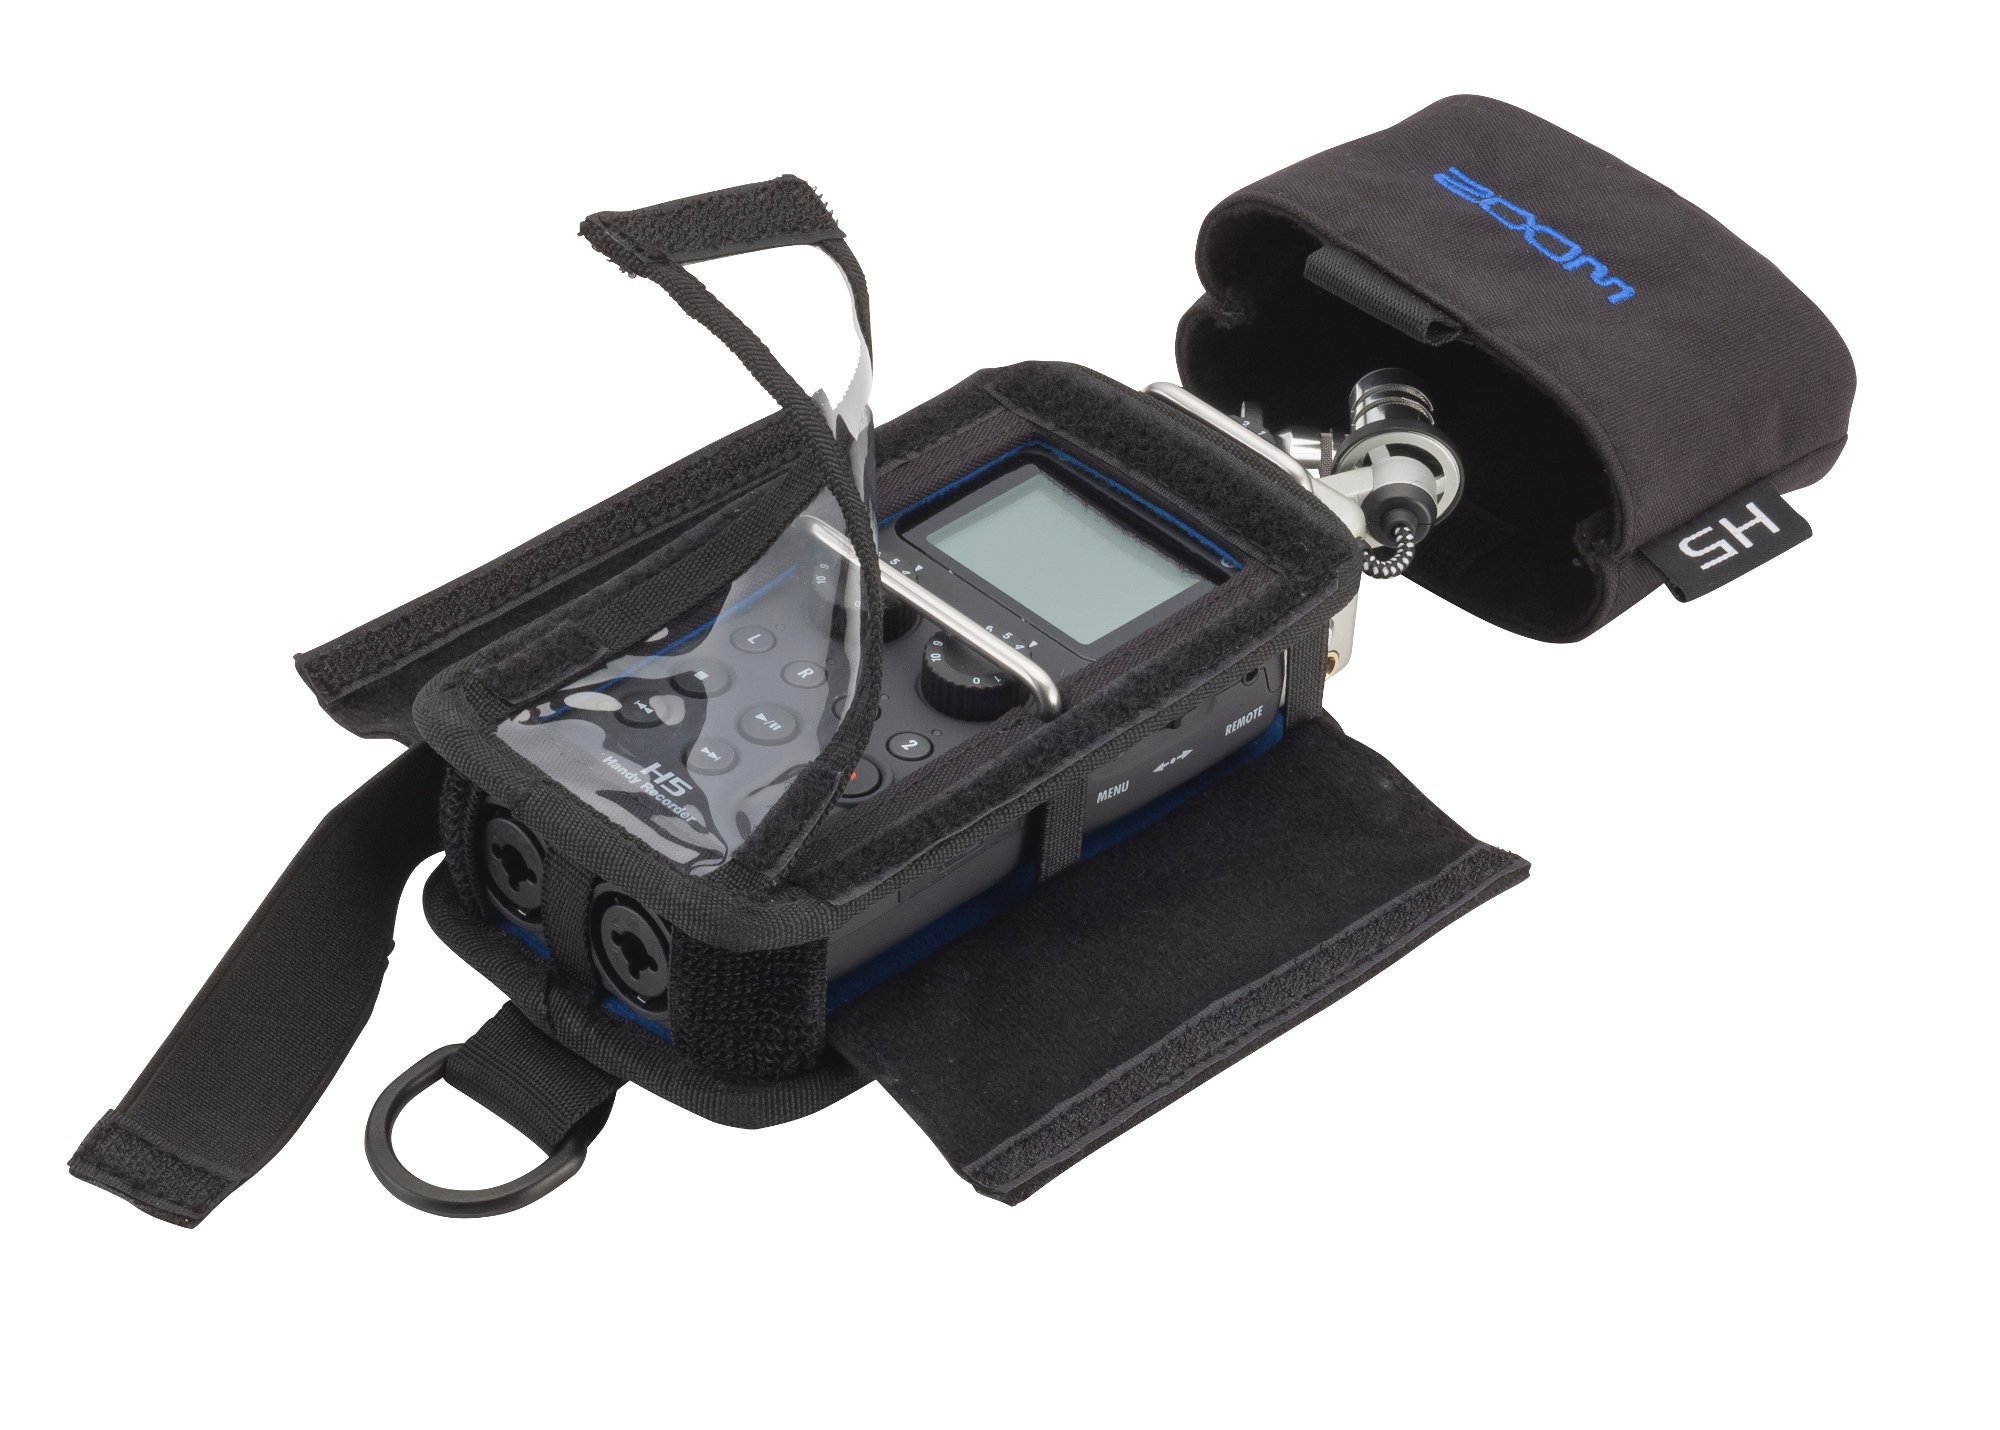 Protective Case for ZOOM H5 Handy Recorder by Zoom, PCH-5 | Full